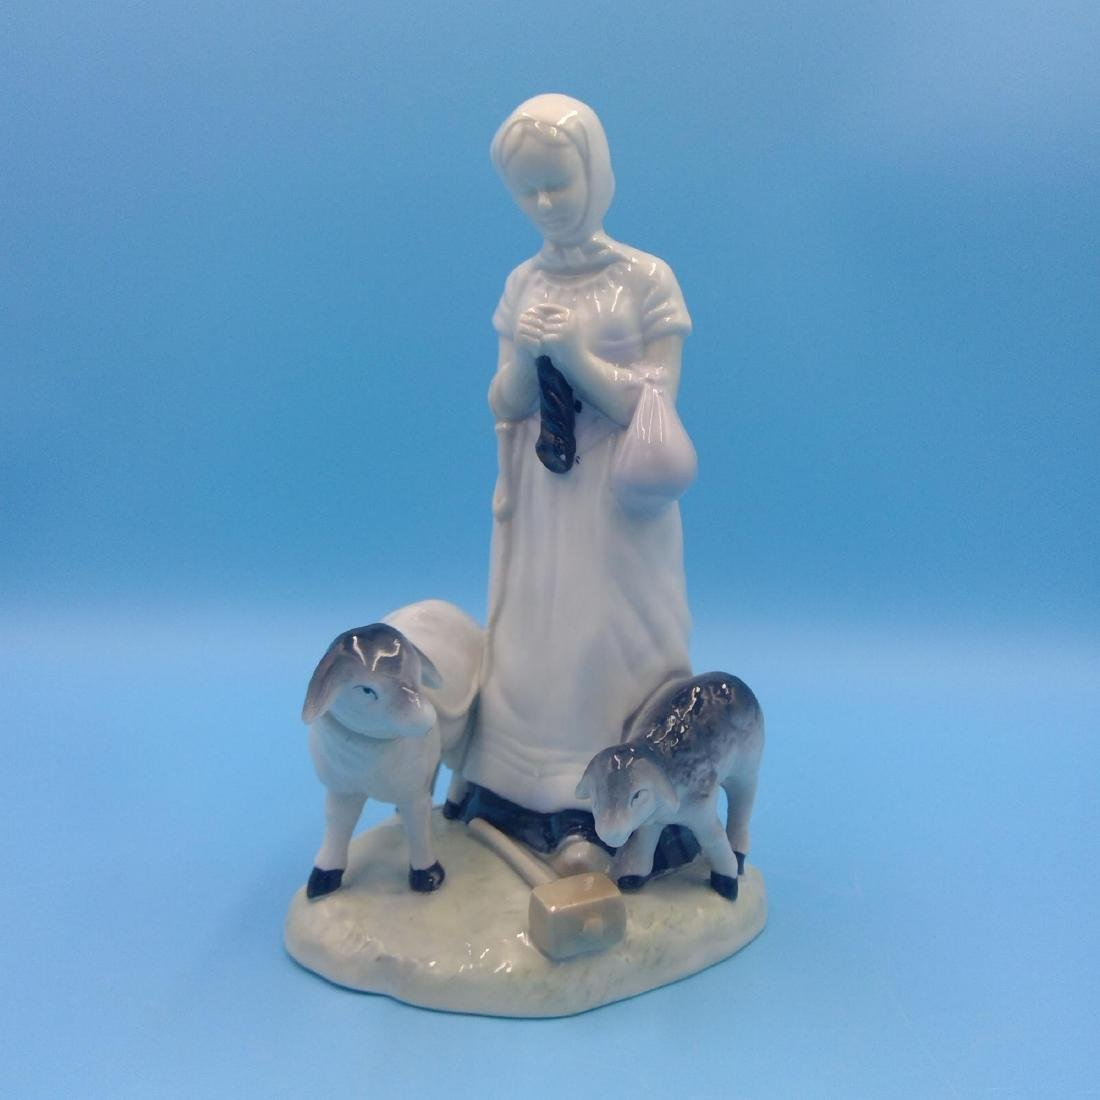 GROUP OF 6 GERMAN PORCELAIN FIGURINES - 7